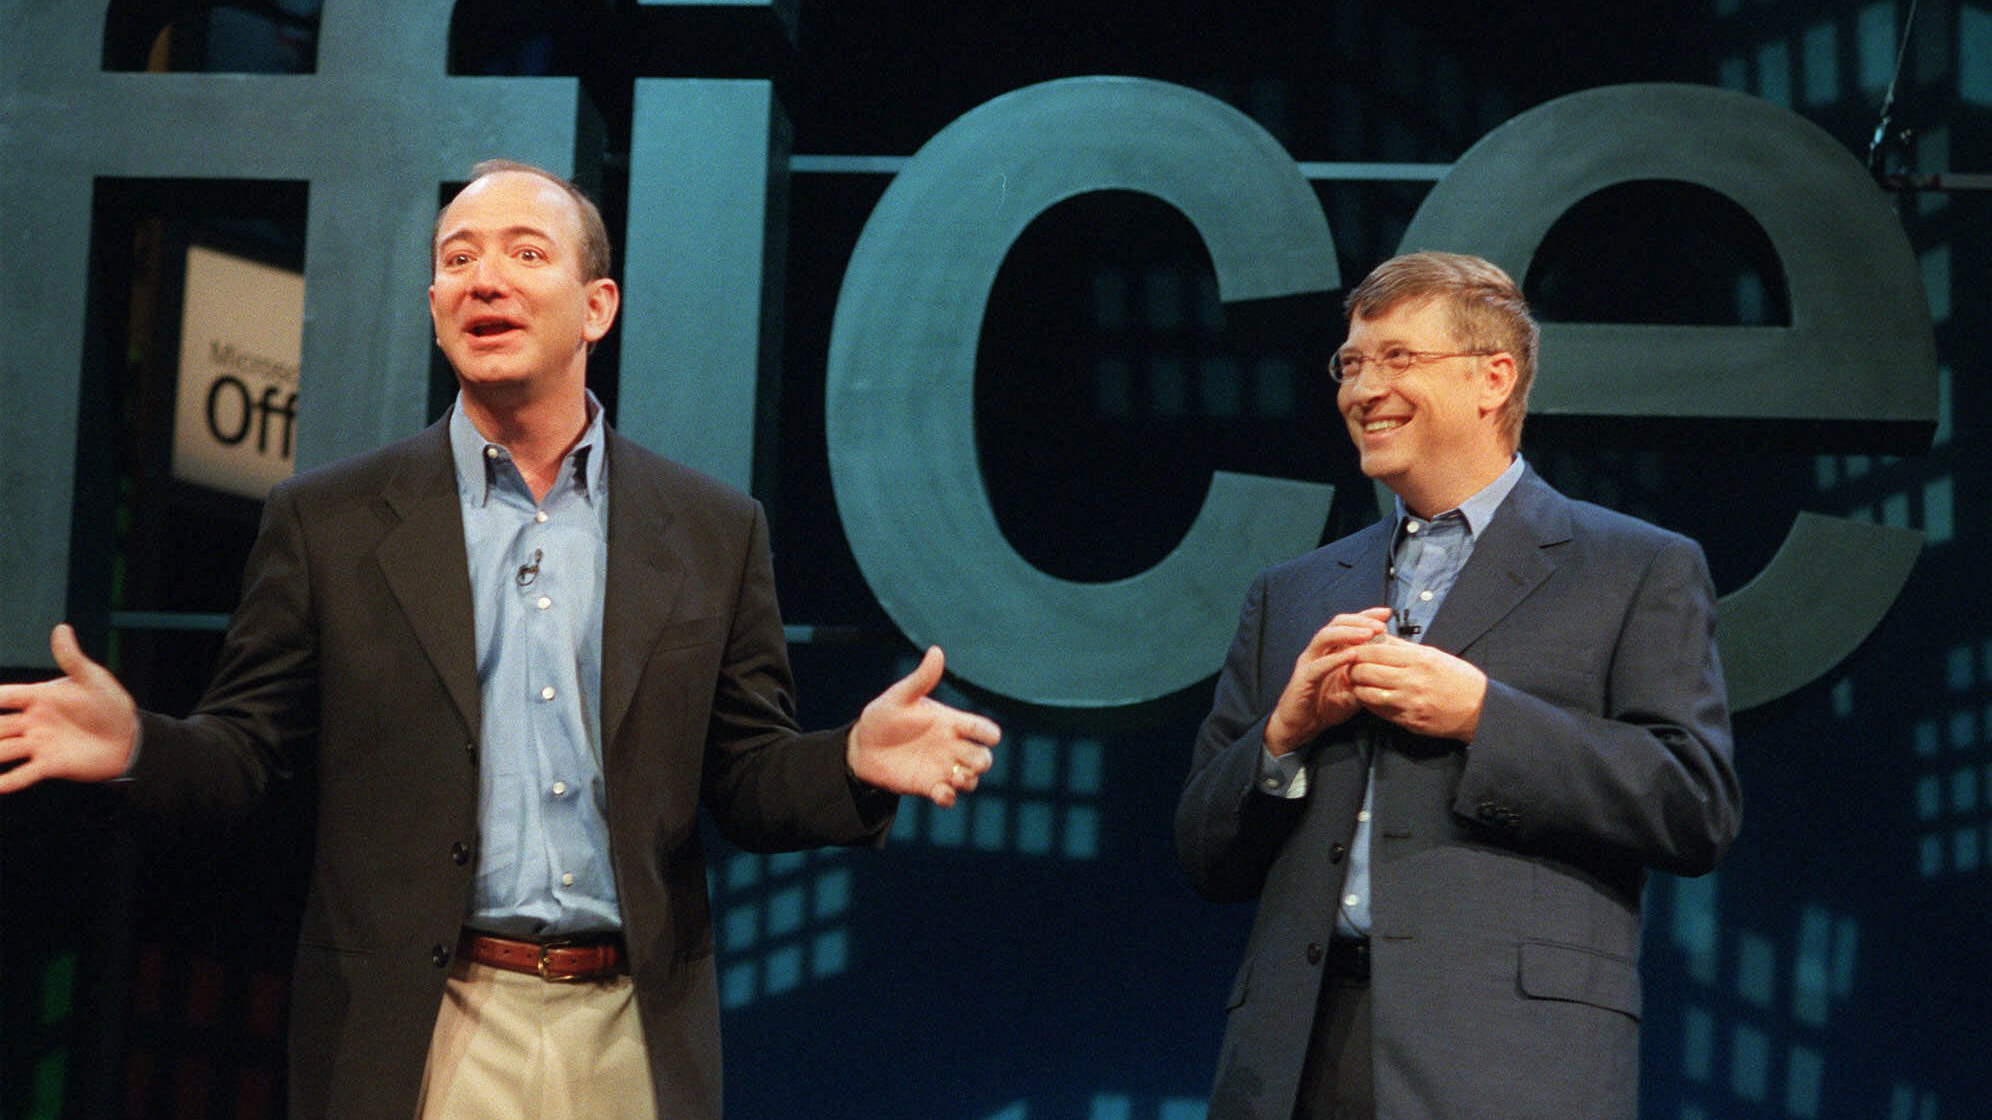 Jeff Bezos, founder and CEO of Amazon.com, left, meets with Bill Gates, Microsoft Corp. chairman and chief software architect, at a New York news conference to launch Microsoft's new software, Office XP, Thursday, May 31, 2001. Gates said Office XP will improve worker productivity, but he acknowledged that there was room for improvement to the product. (AP Photo/Marty Lederhandler)